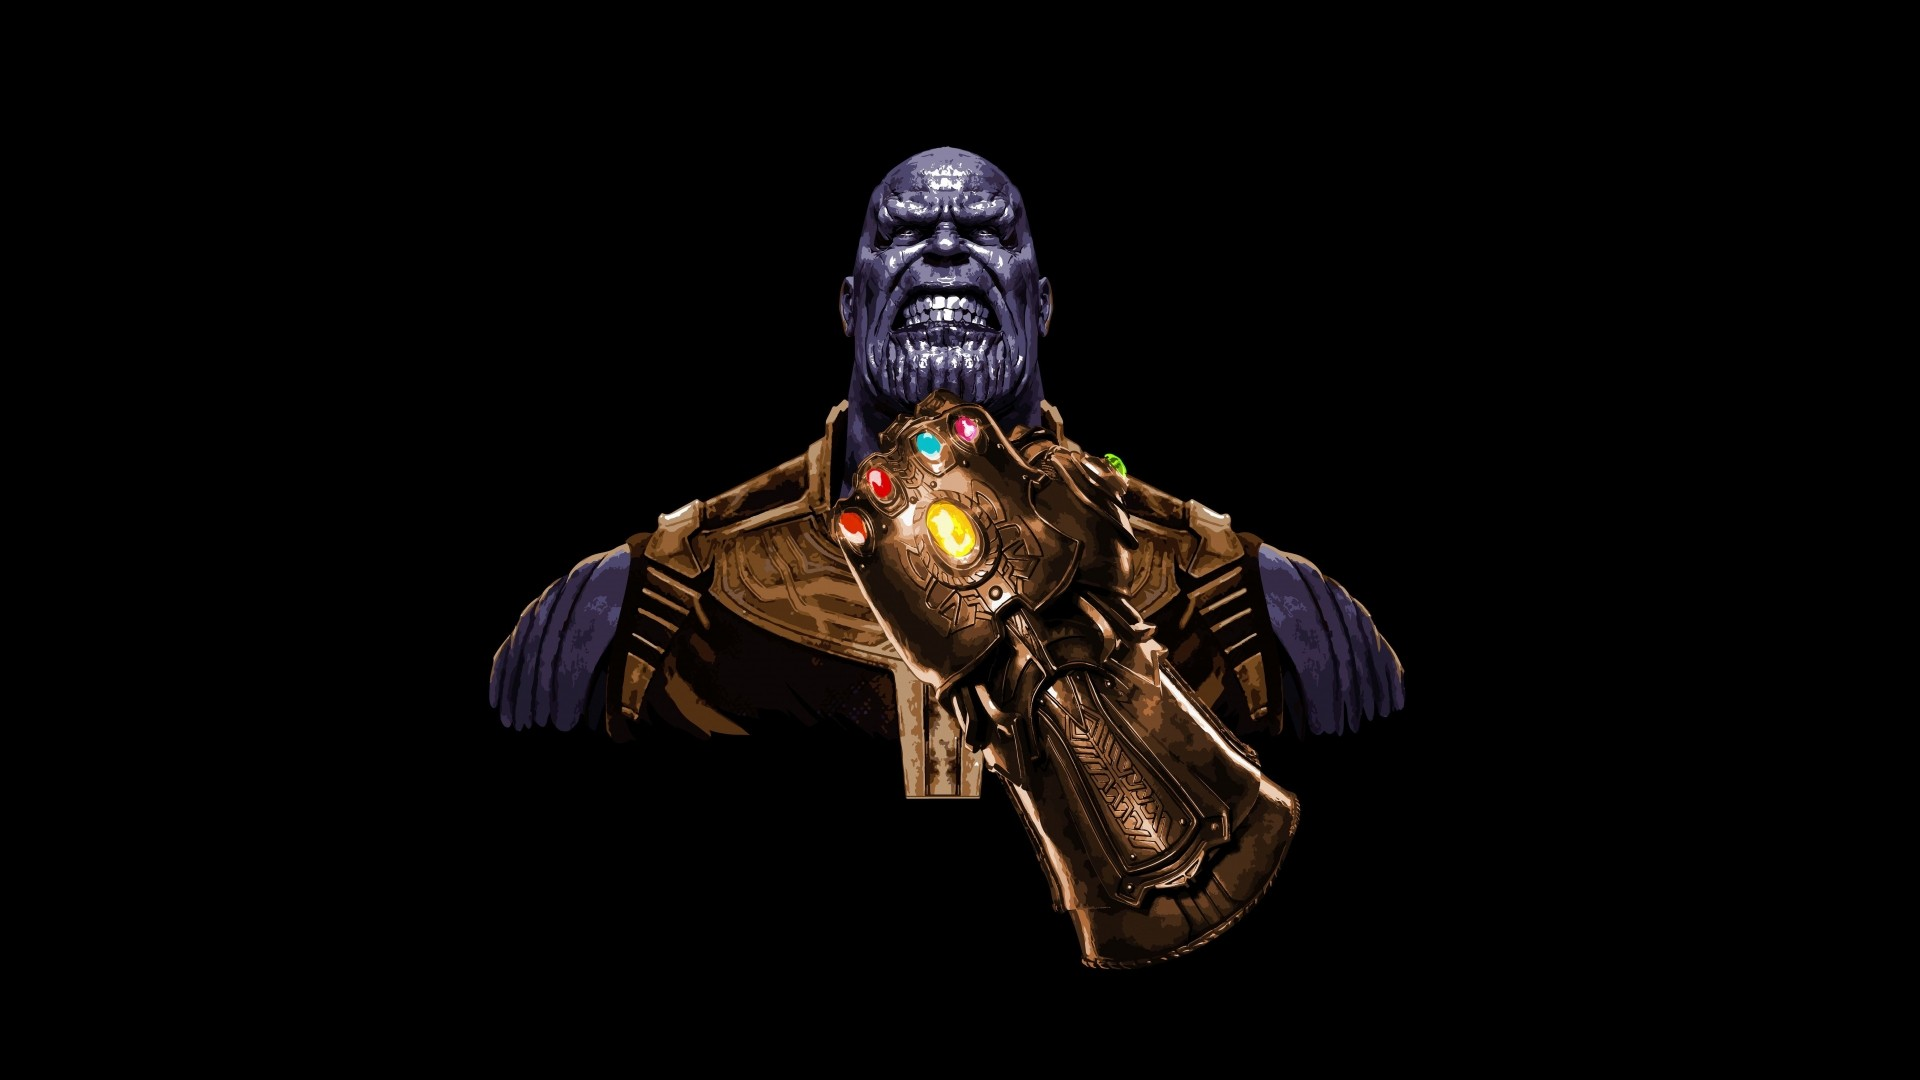 Thanos Free Wallpaper and Background